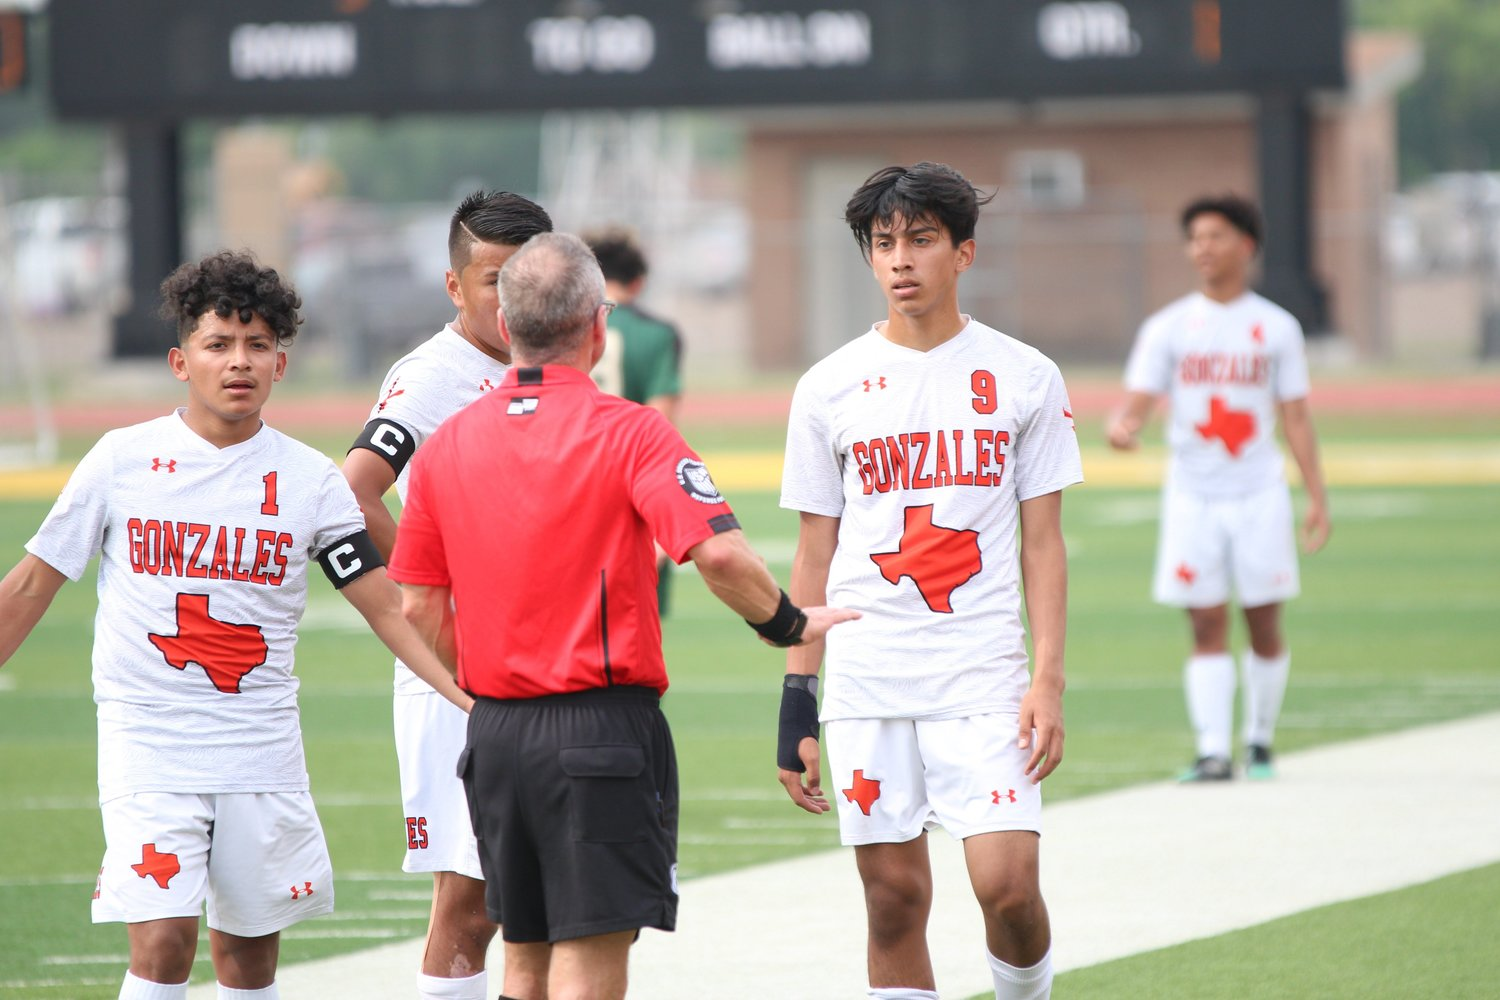 The head official had multiple conversations such as this one with players on both teams throughout the game. Five yellow cards were administered in Canyon Lake's 2-1 victory over Gonzales.